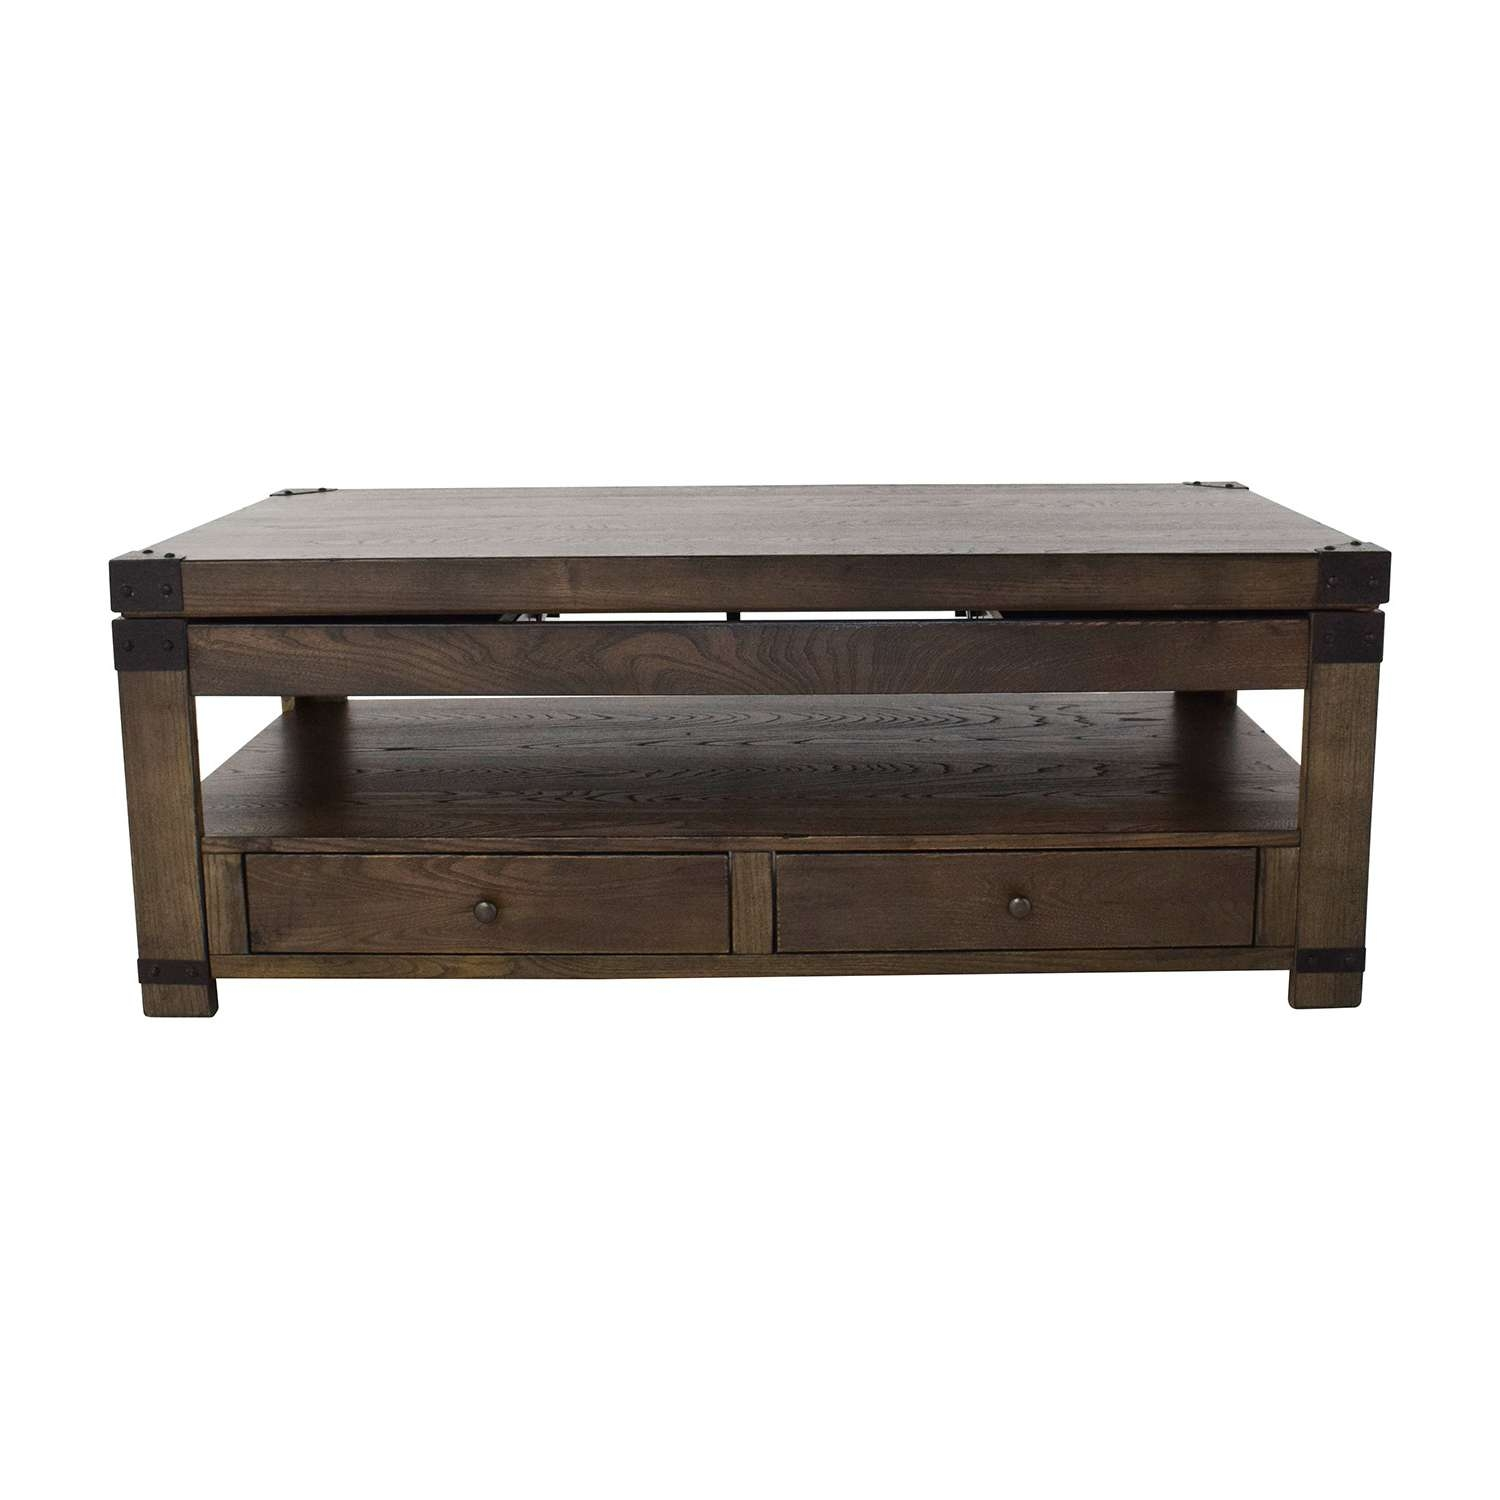 [%preferred Joss And Main Coffee Tables Pertaining To 35% Off – Joss And Main Joss And Main Kieran Coffee Table / Tables|35% Off – Joss And Main Joss And Main Kieran Coffee Table / Tables Inside Most Current Joss And Main Coffee Tables%] (View 2 of 20)